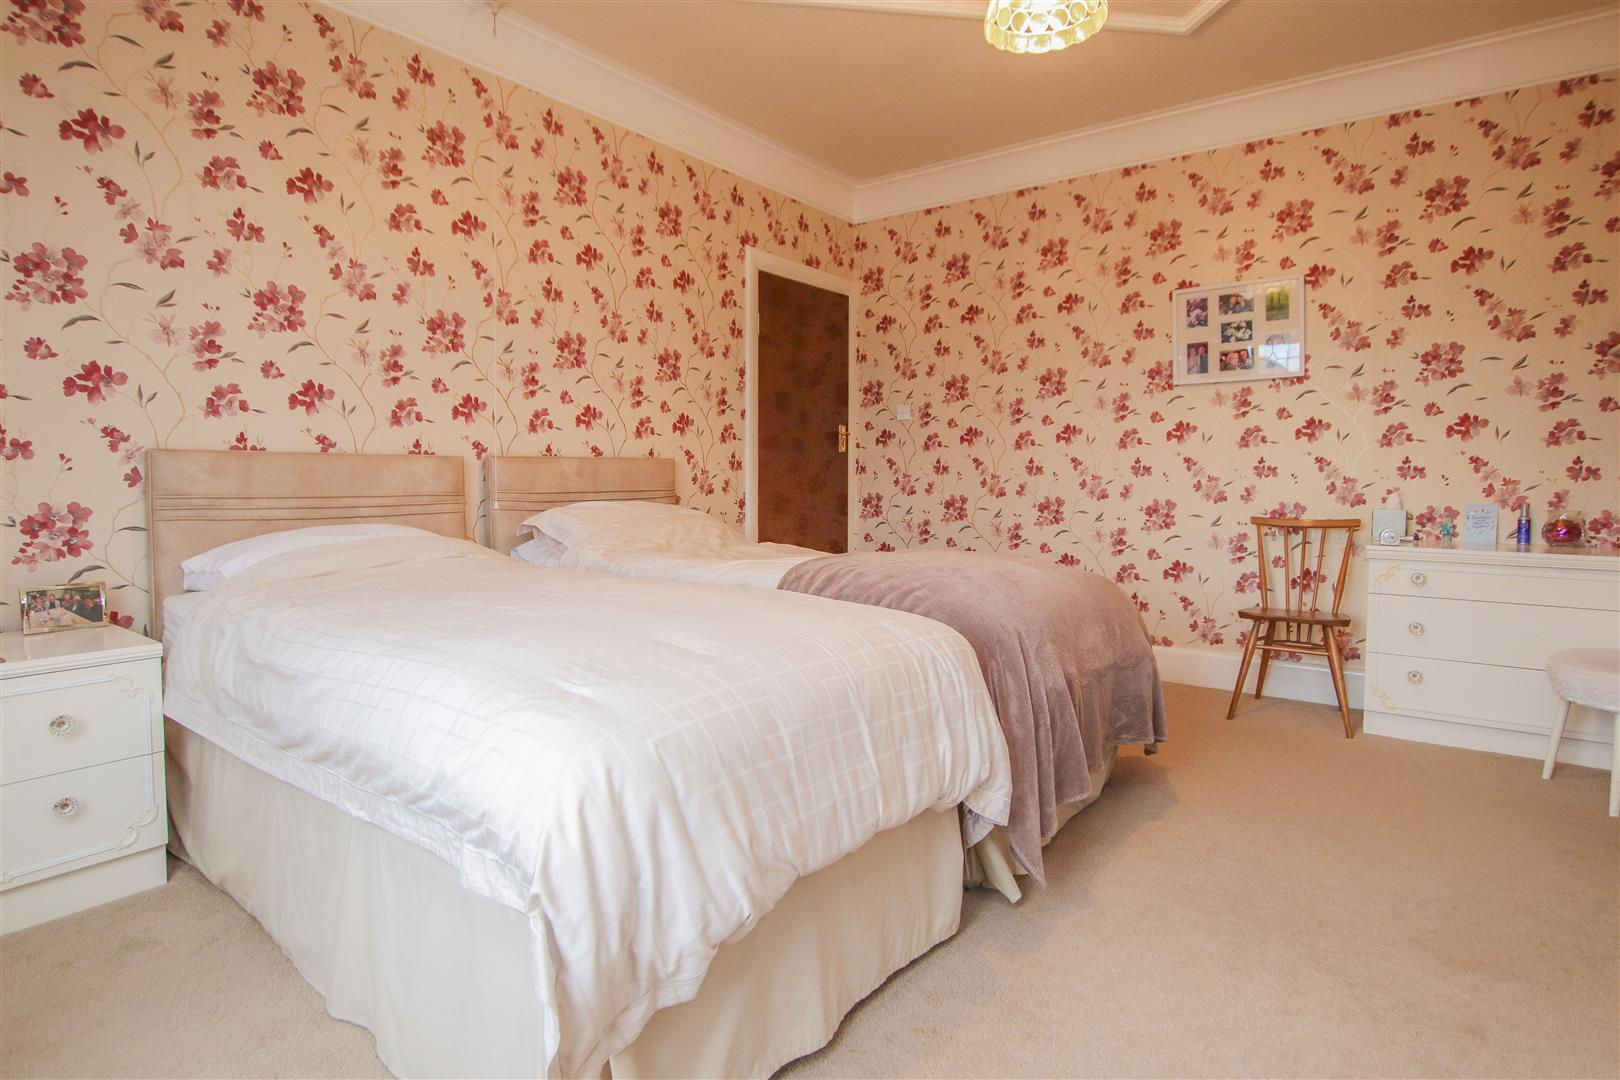 4 Bedroom Detached House For Sale - WHINEY_10.JPG